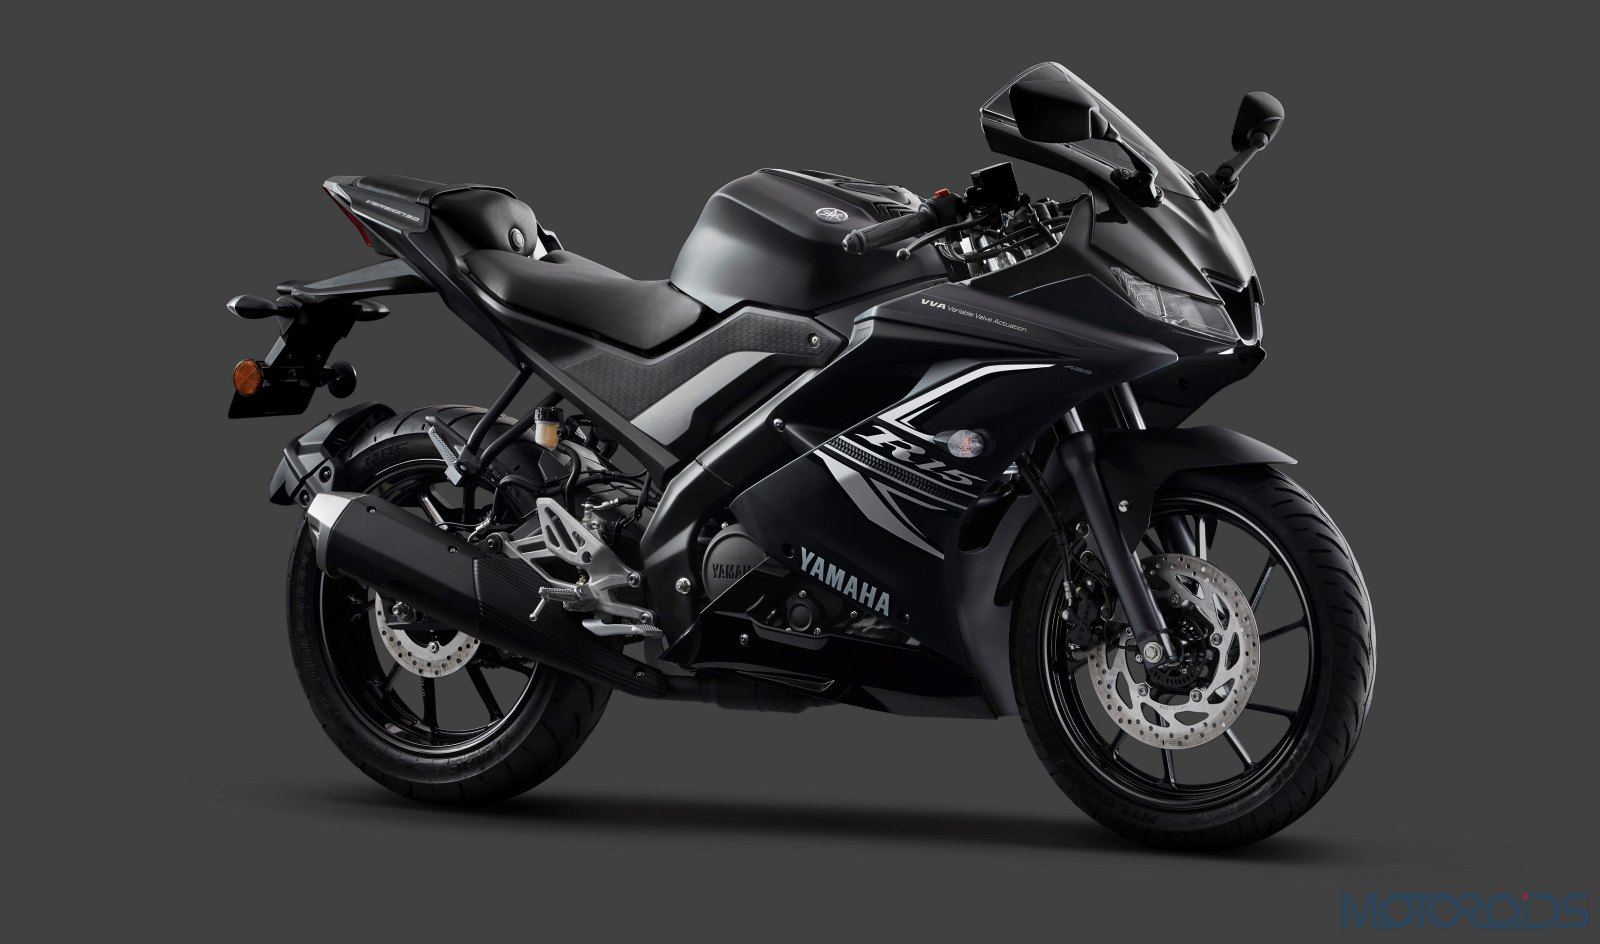 Yamaha YZF-R15 V3 Gets Dual Channel ABS And A New Darknight